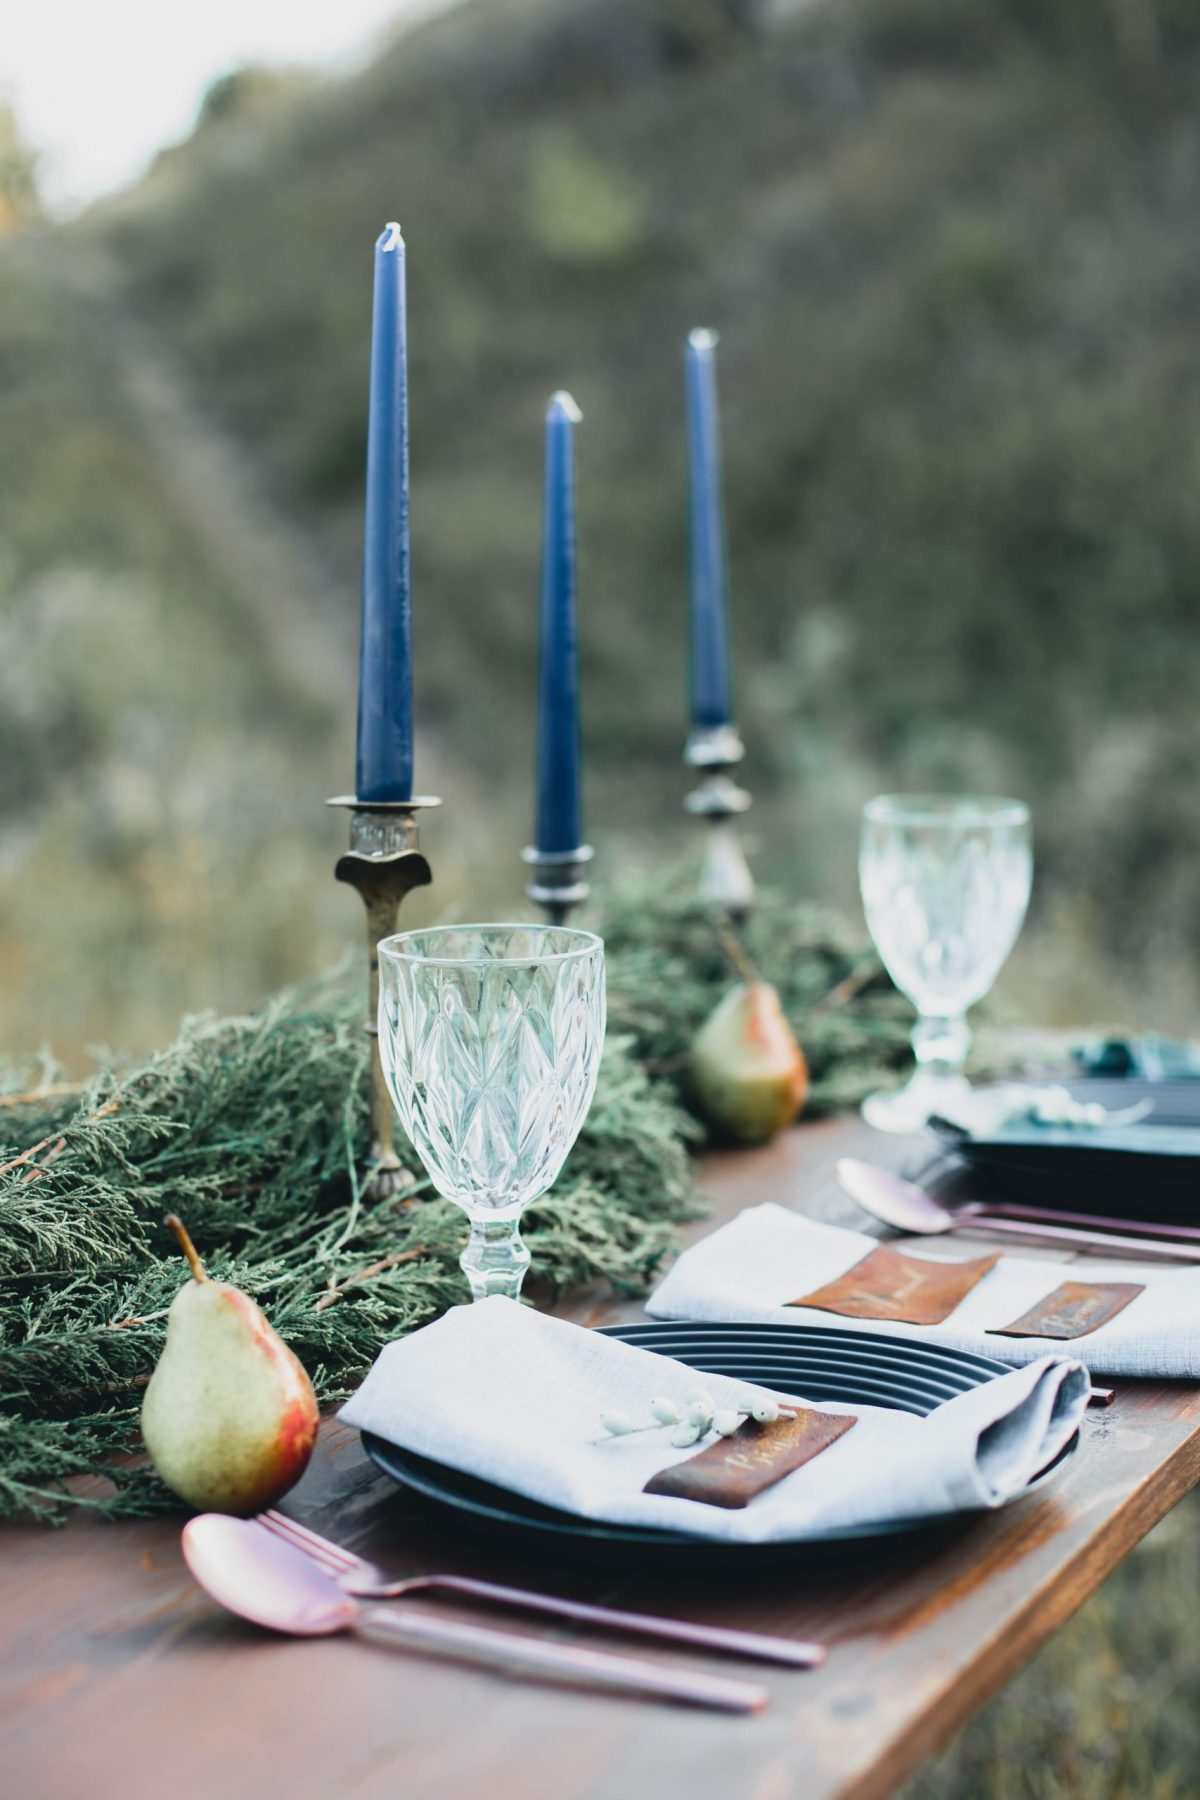 Outdoor place settings, with blue candle sticks, goblets, napkins, greenery and pears